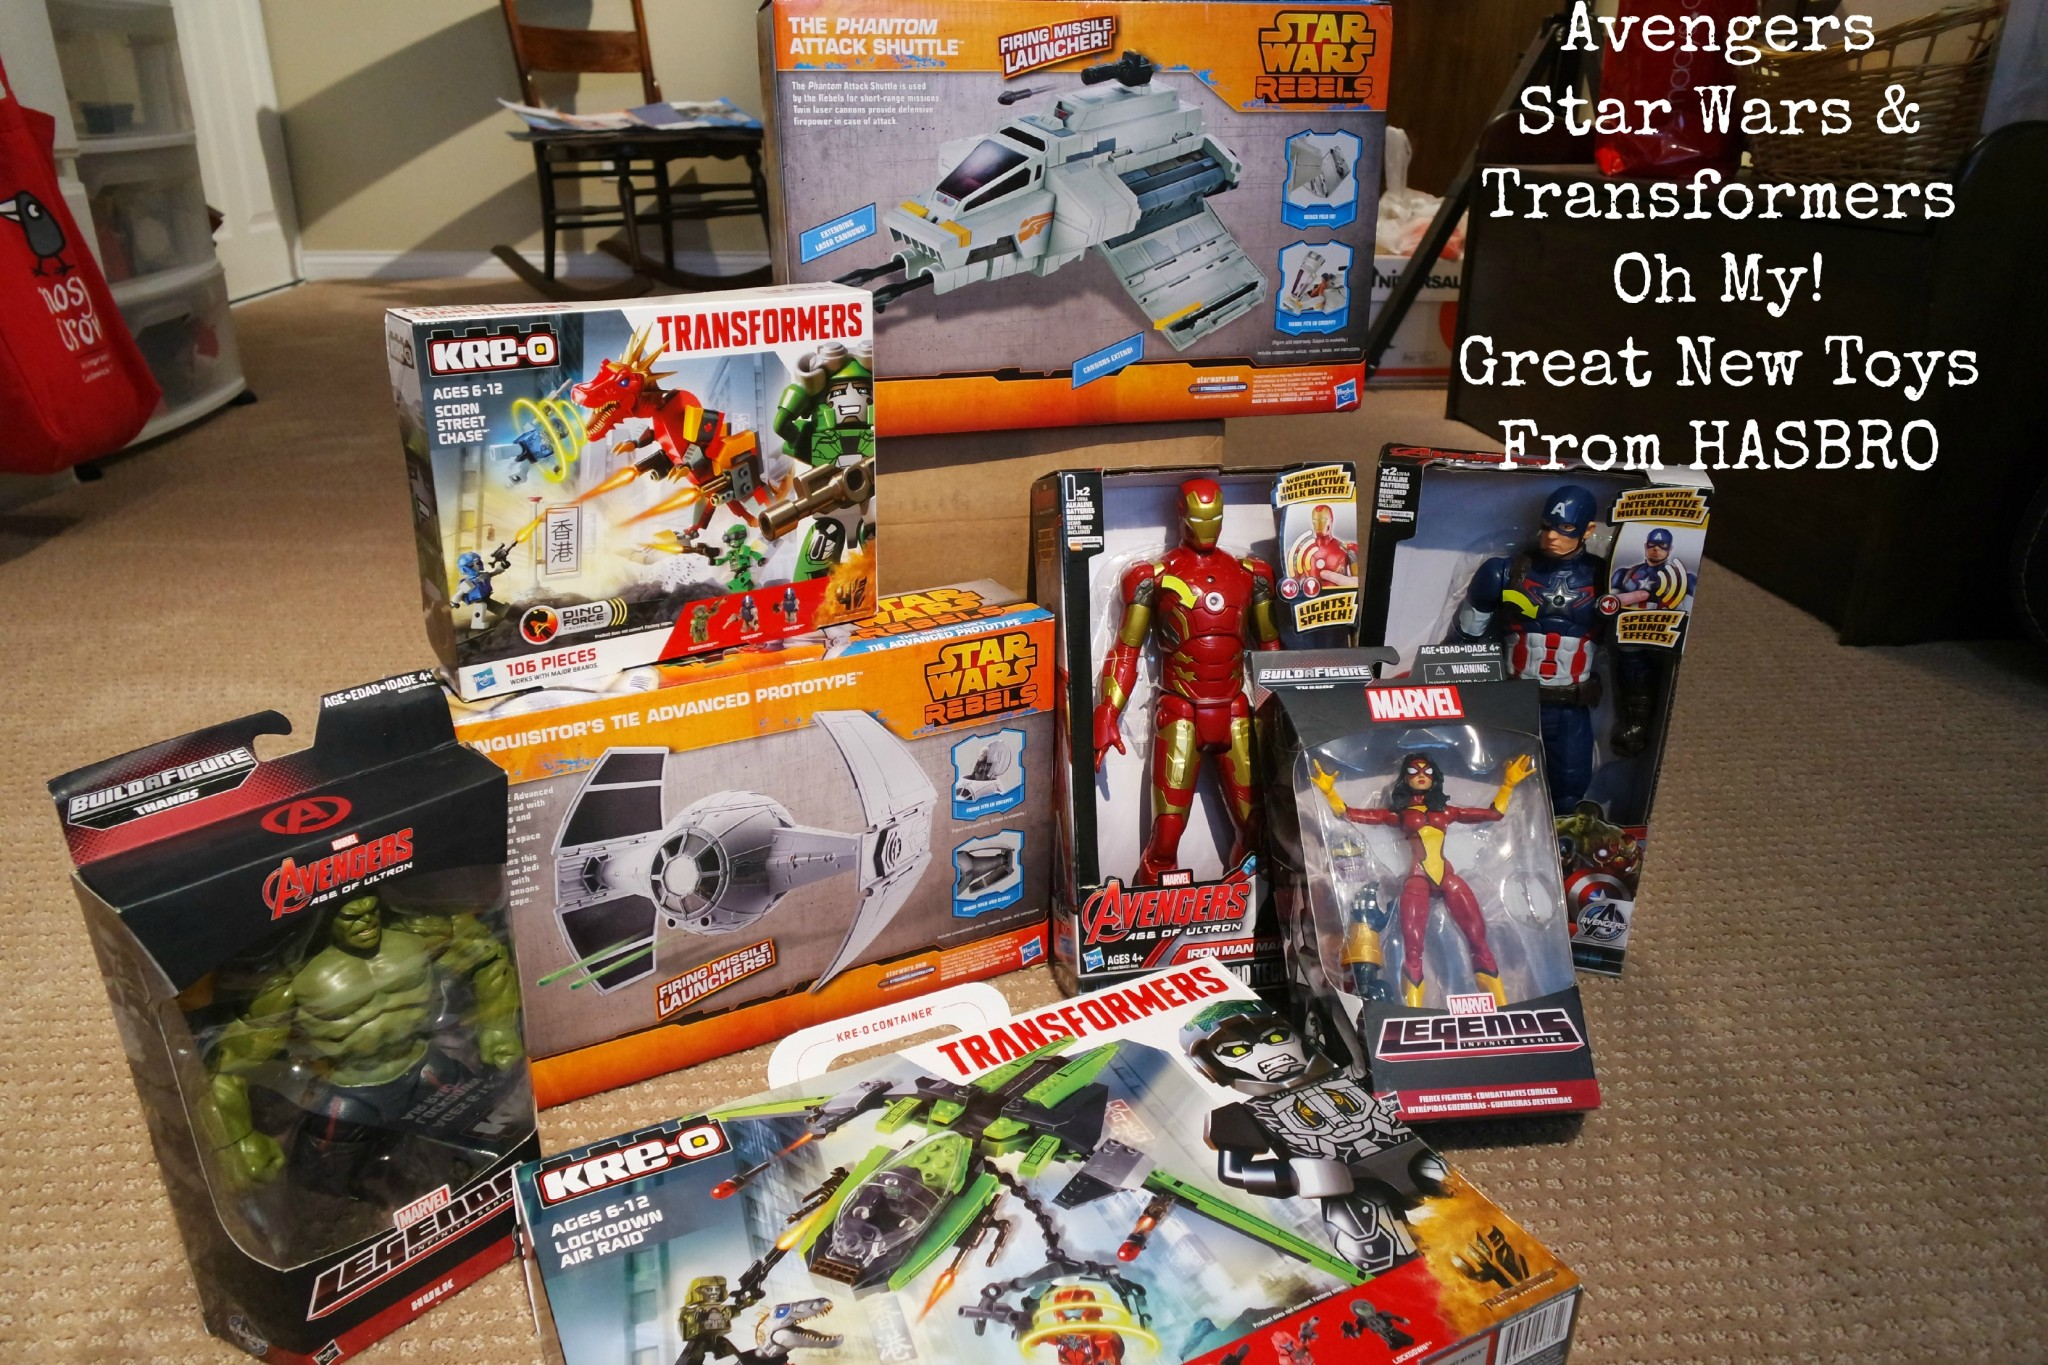 Toys From Hasbro : New avengers star wars transformer toys from hasbro